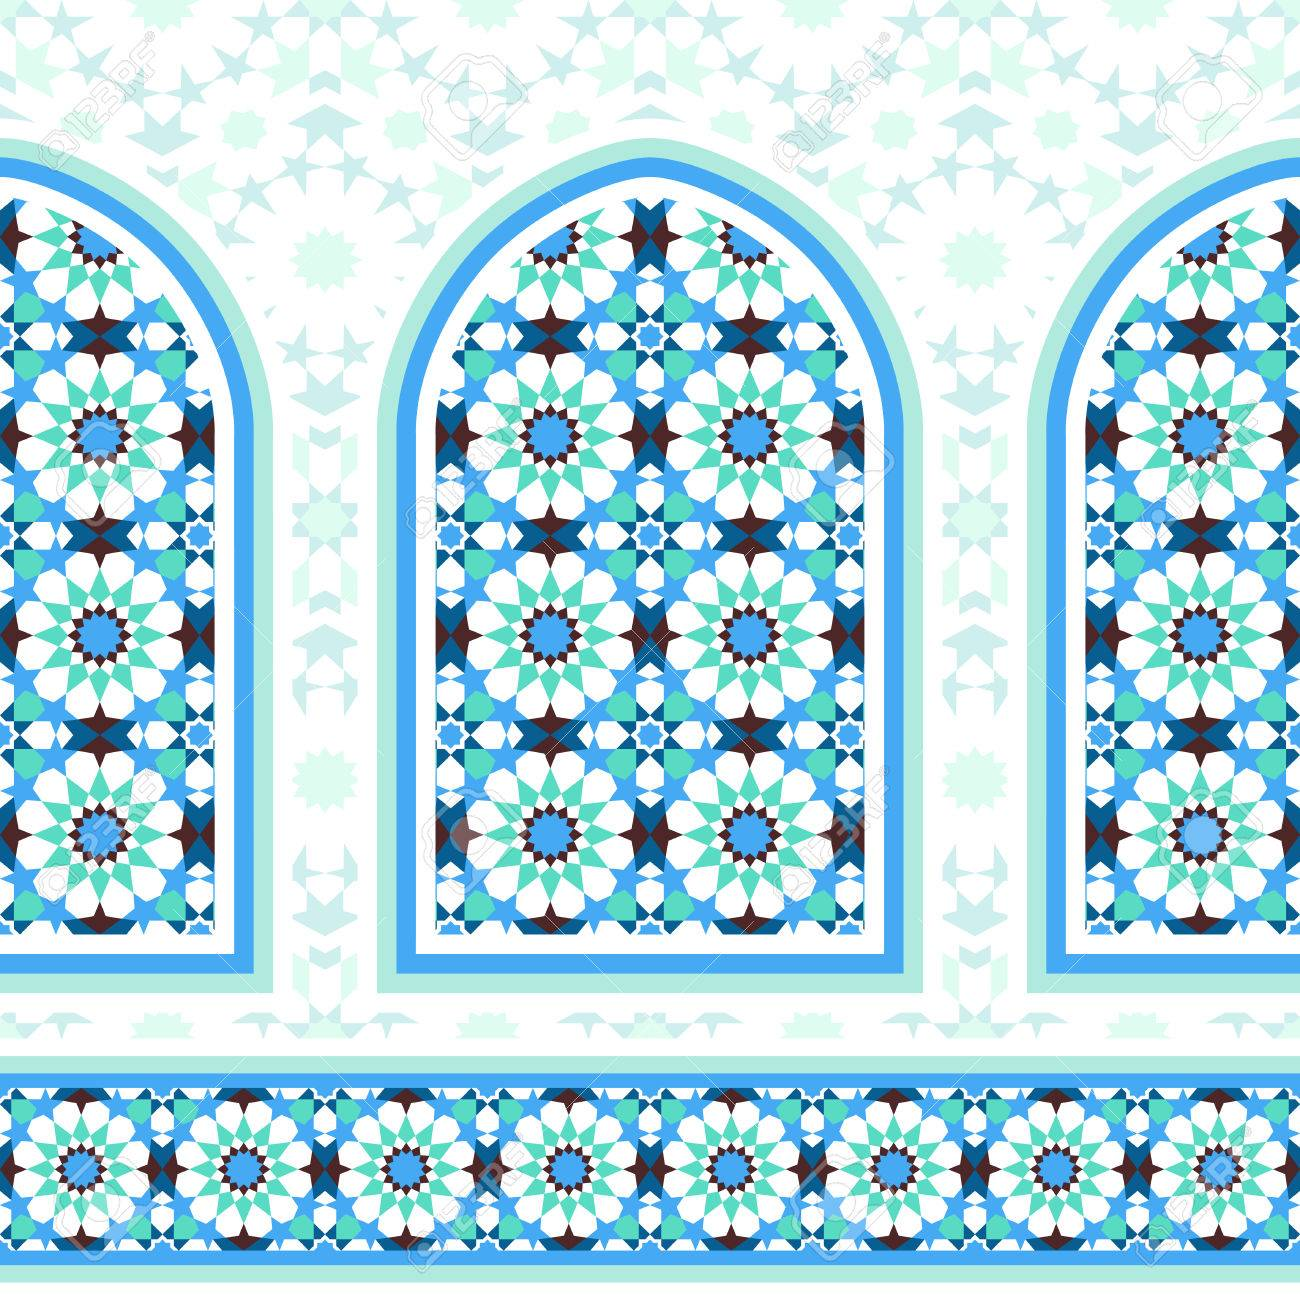 elements of islamic architecture ornamental mosaic background